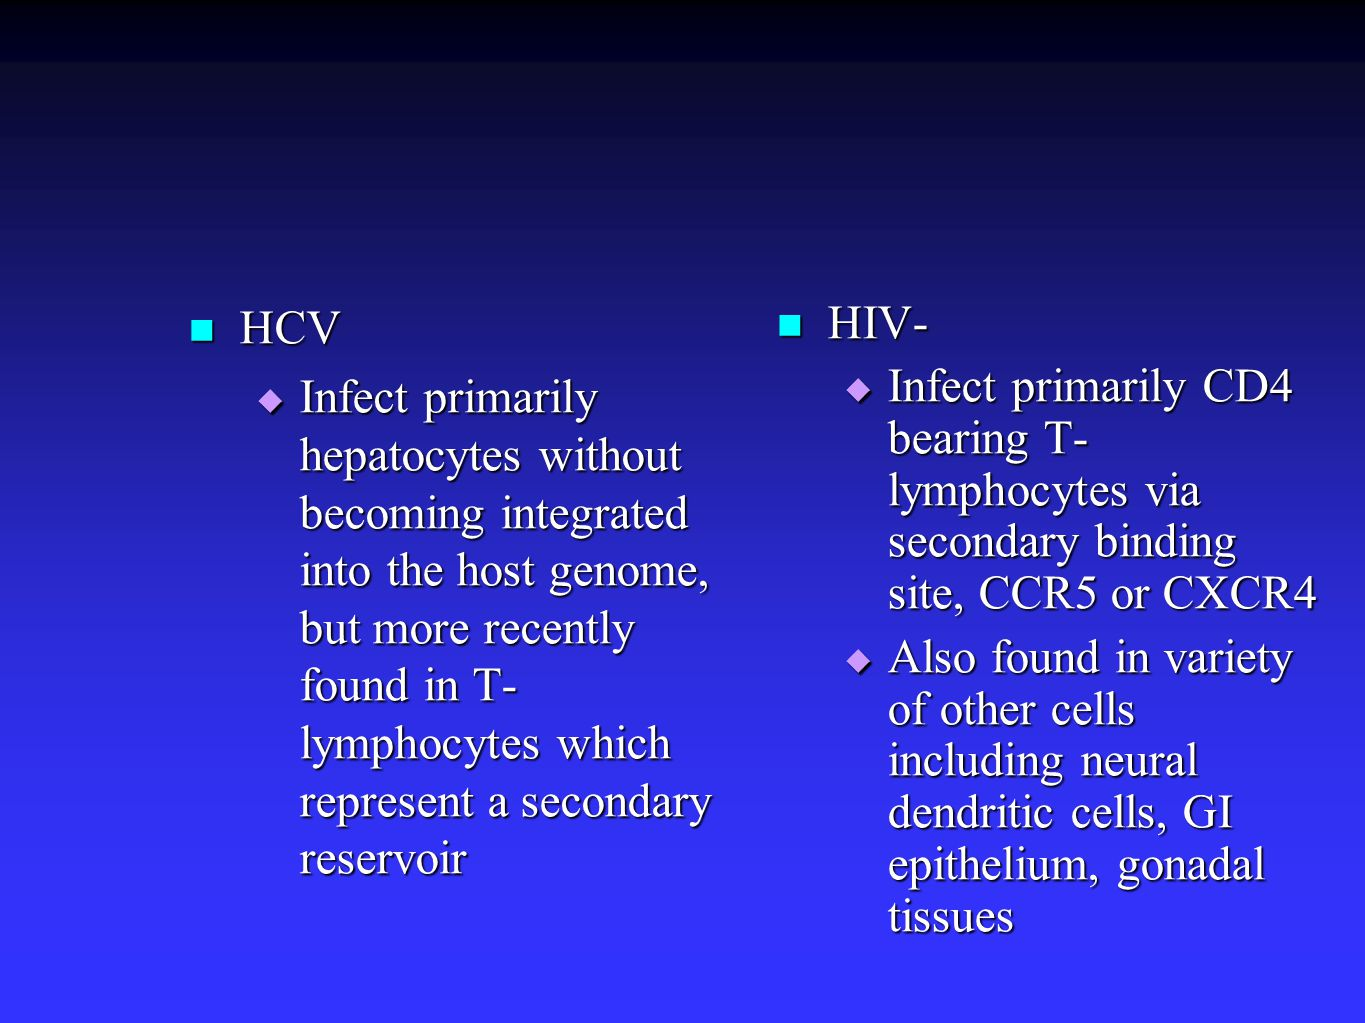 Impact of PI Containing regimens on HCV Benhamou Y et al, Hepatology 2001;34:283-7 PI Containing Non PI based Regimens P value Fibrosis Score 1.25+/-0.111.53+/-0.090.02 Inflammation Score 1.69+/-0.172.10+/-0.110.03 Multivariate factors associated with HCV progression: absence of PI based therapy; CD4 count 5g/d; age >20 at time of infection.